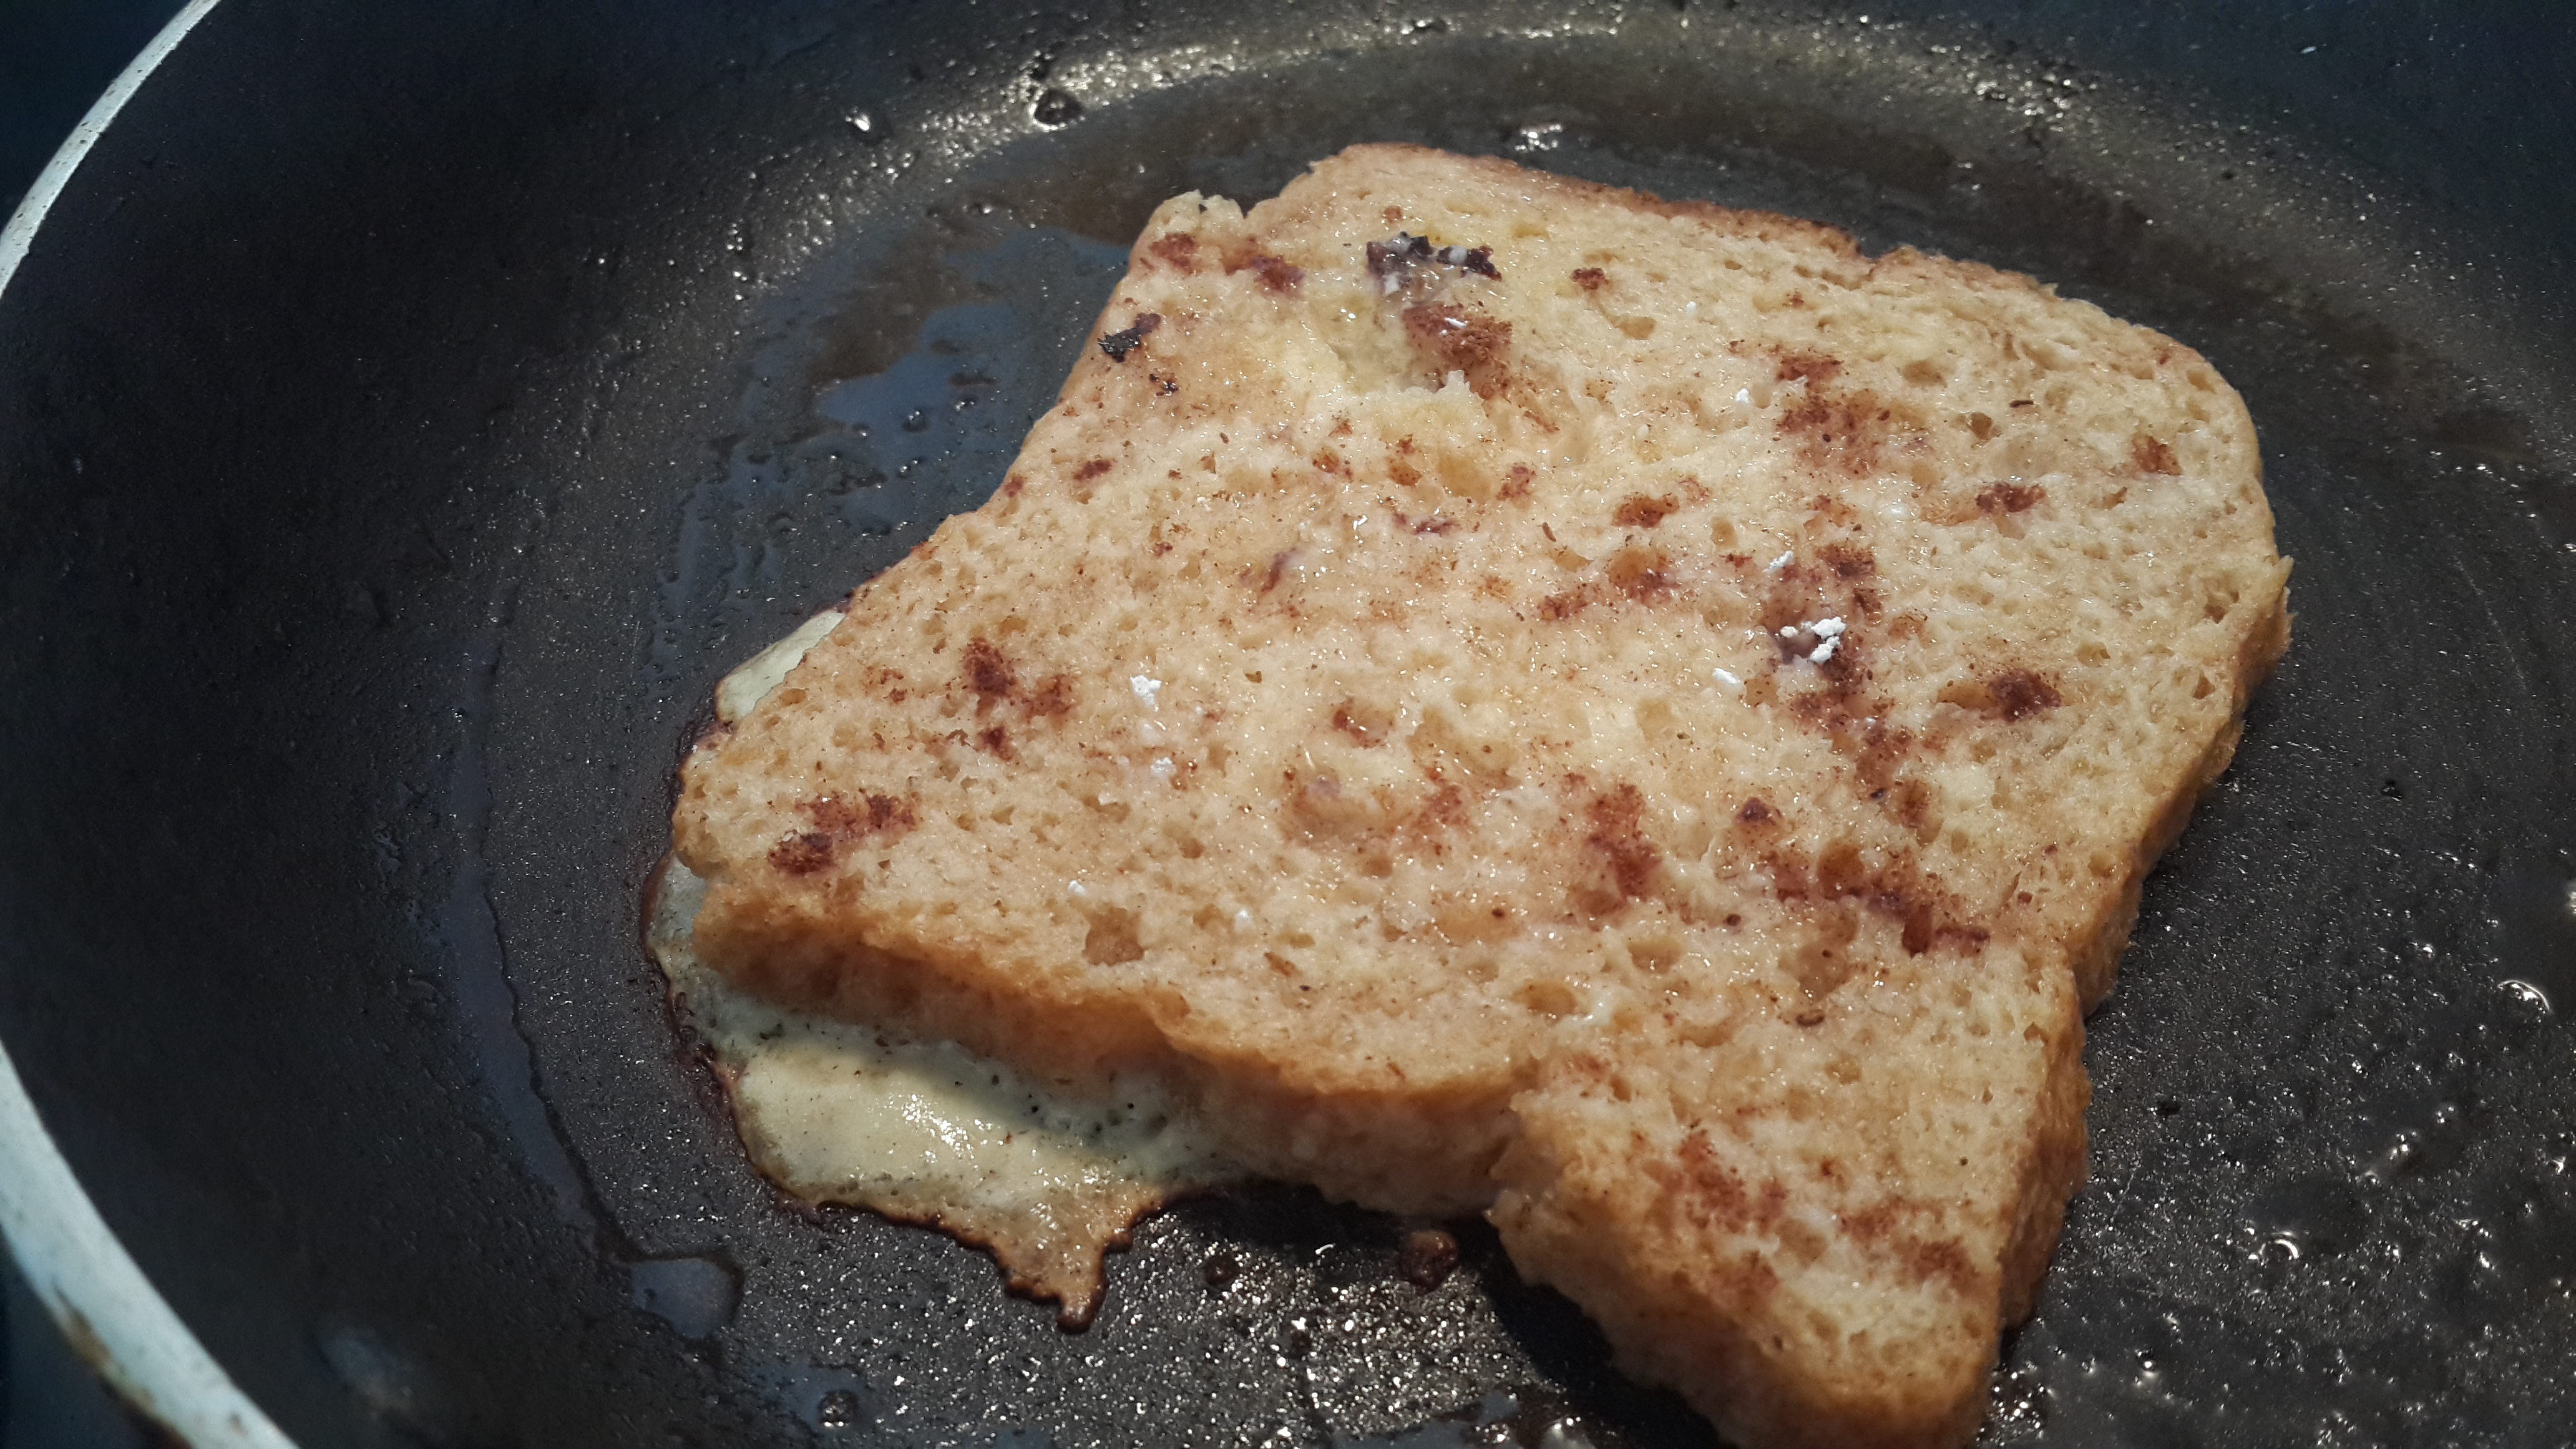 French toast sprinkled with cinnamon powder and caster sugar, in progress